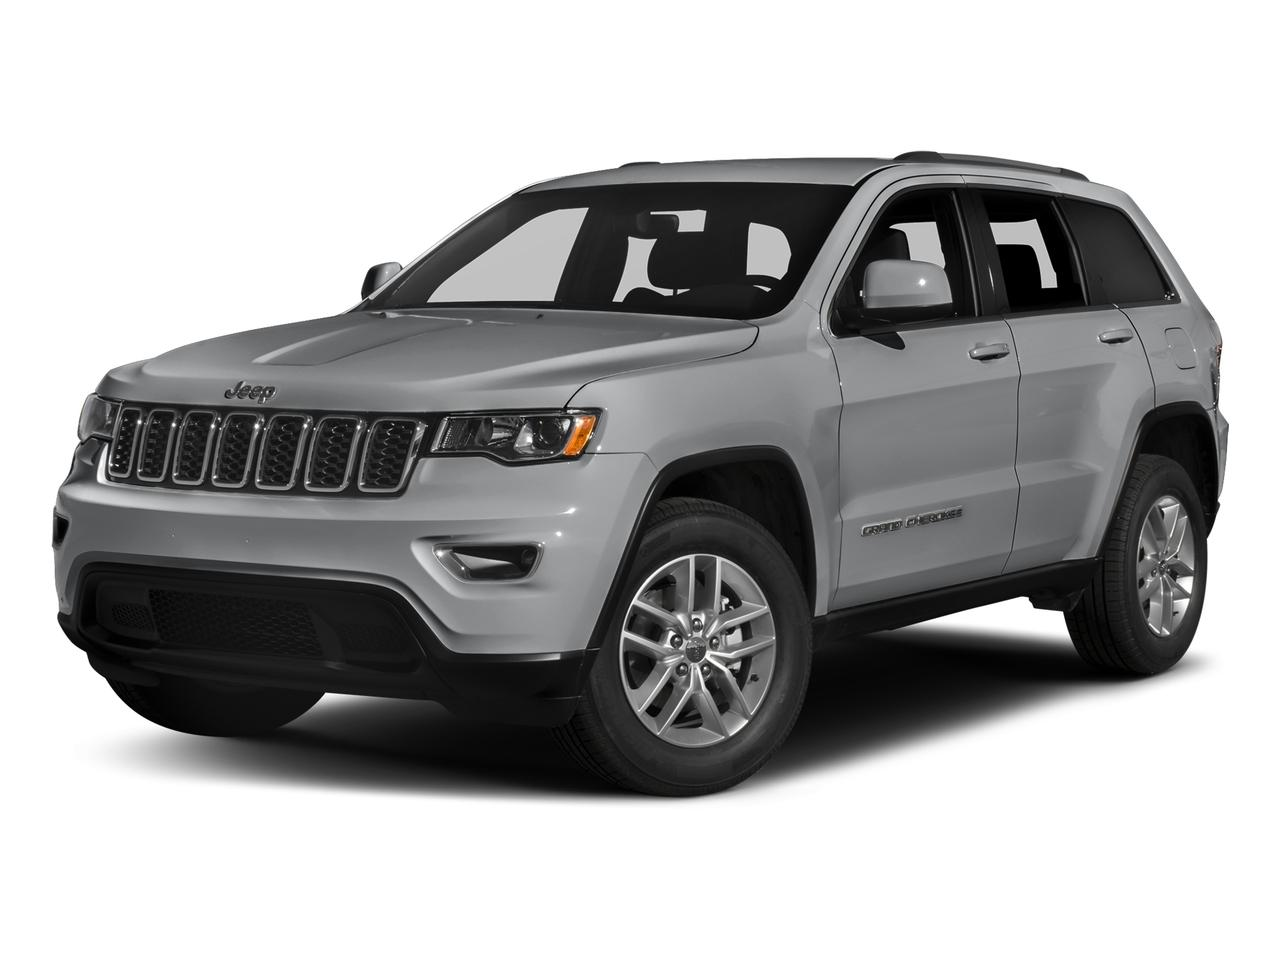 2017 Jeep Grand Cherokee Vehicle Photo in Jenkintown, PA 19046